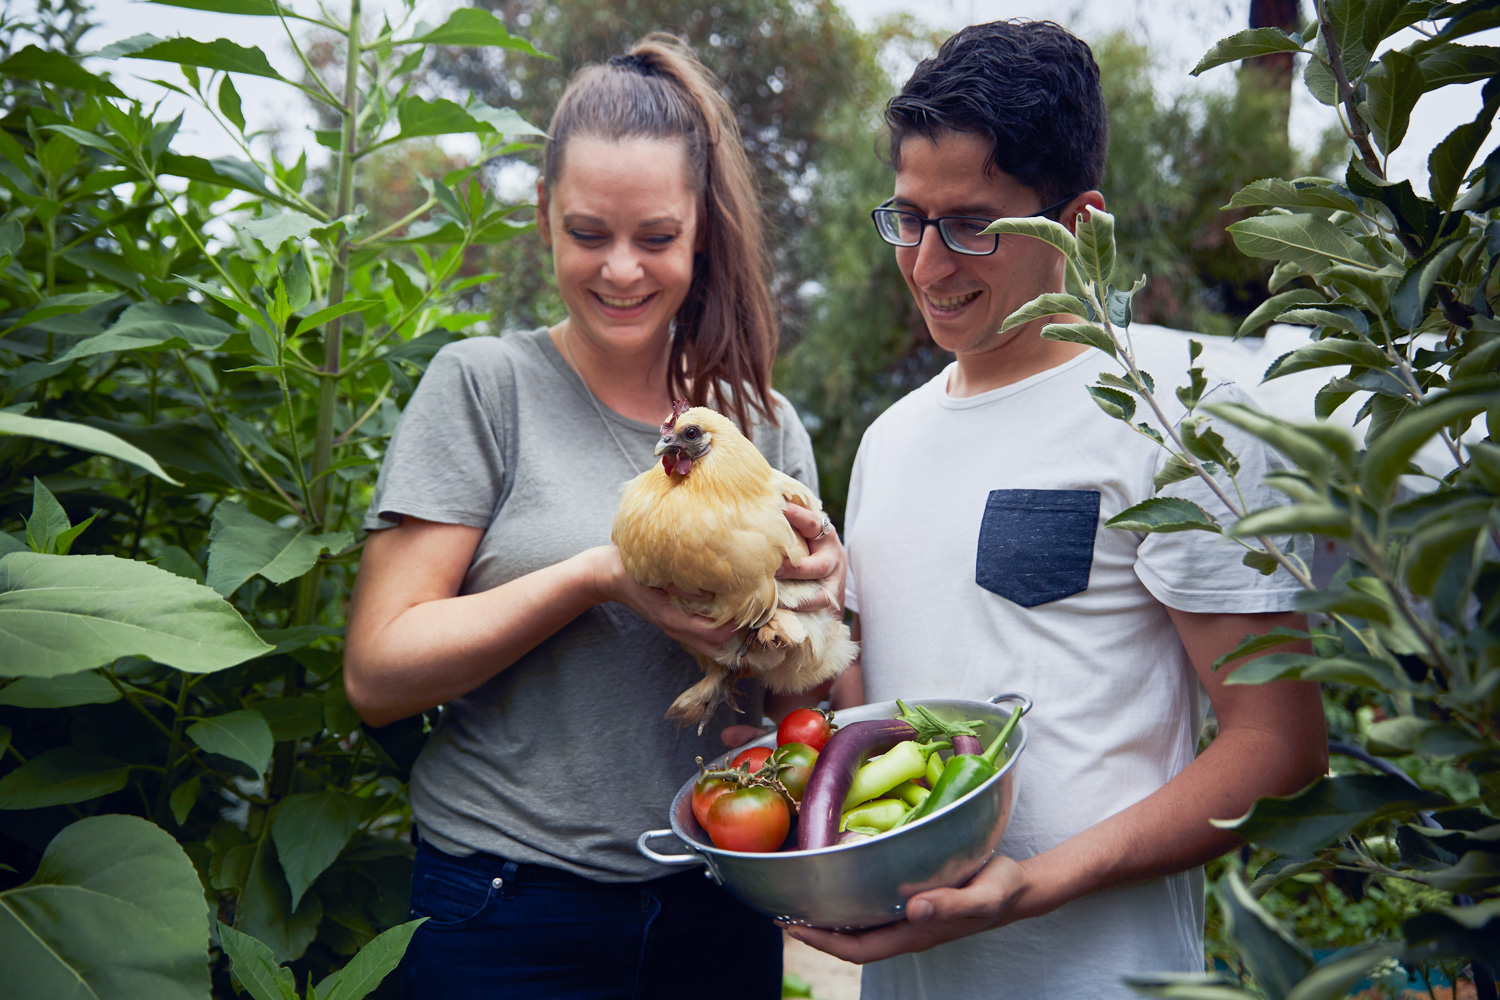 Koren Helbig and Carmelo Scavone with Esty the chicken